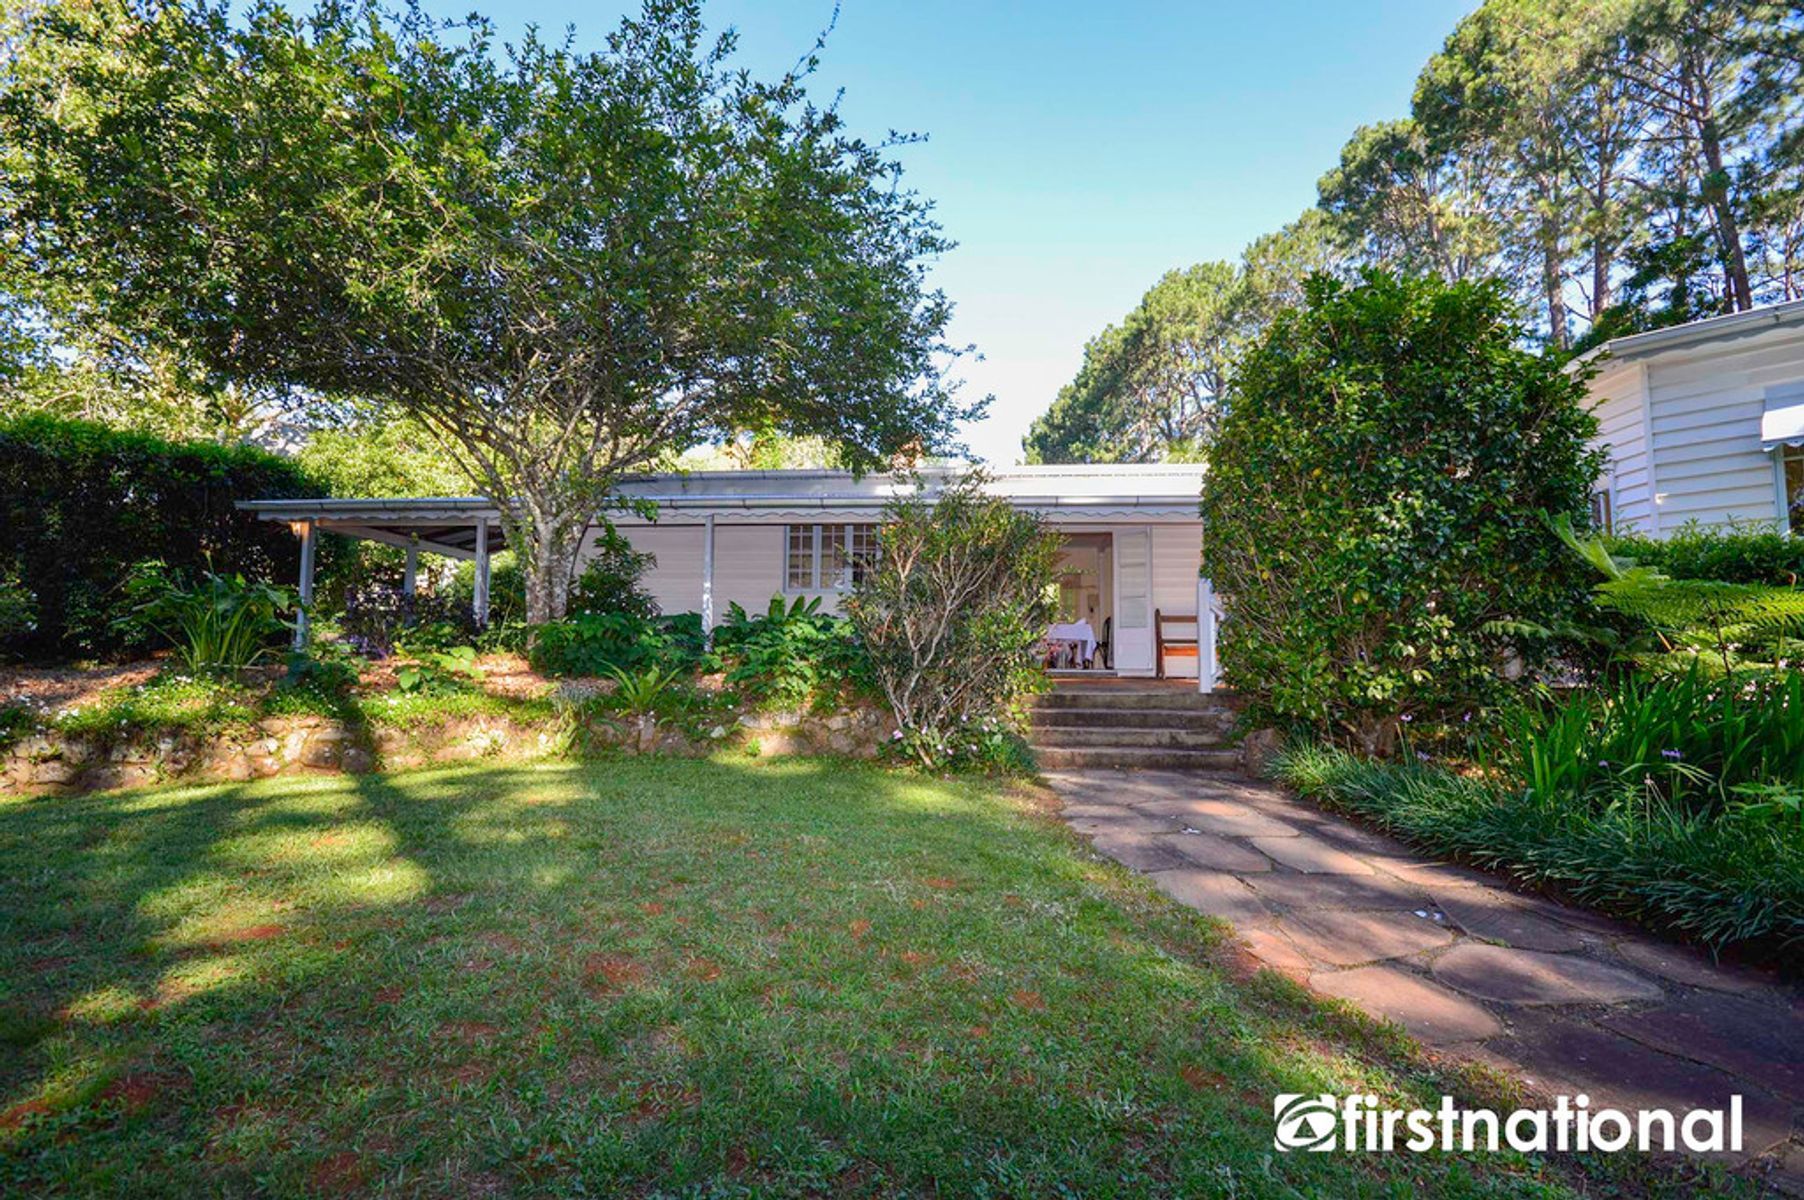 216 to 226 Cnr Curtis & Long Rd, Tamborine Mountain, QLD 4272